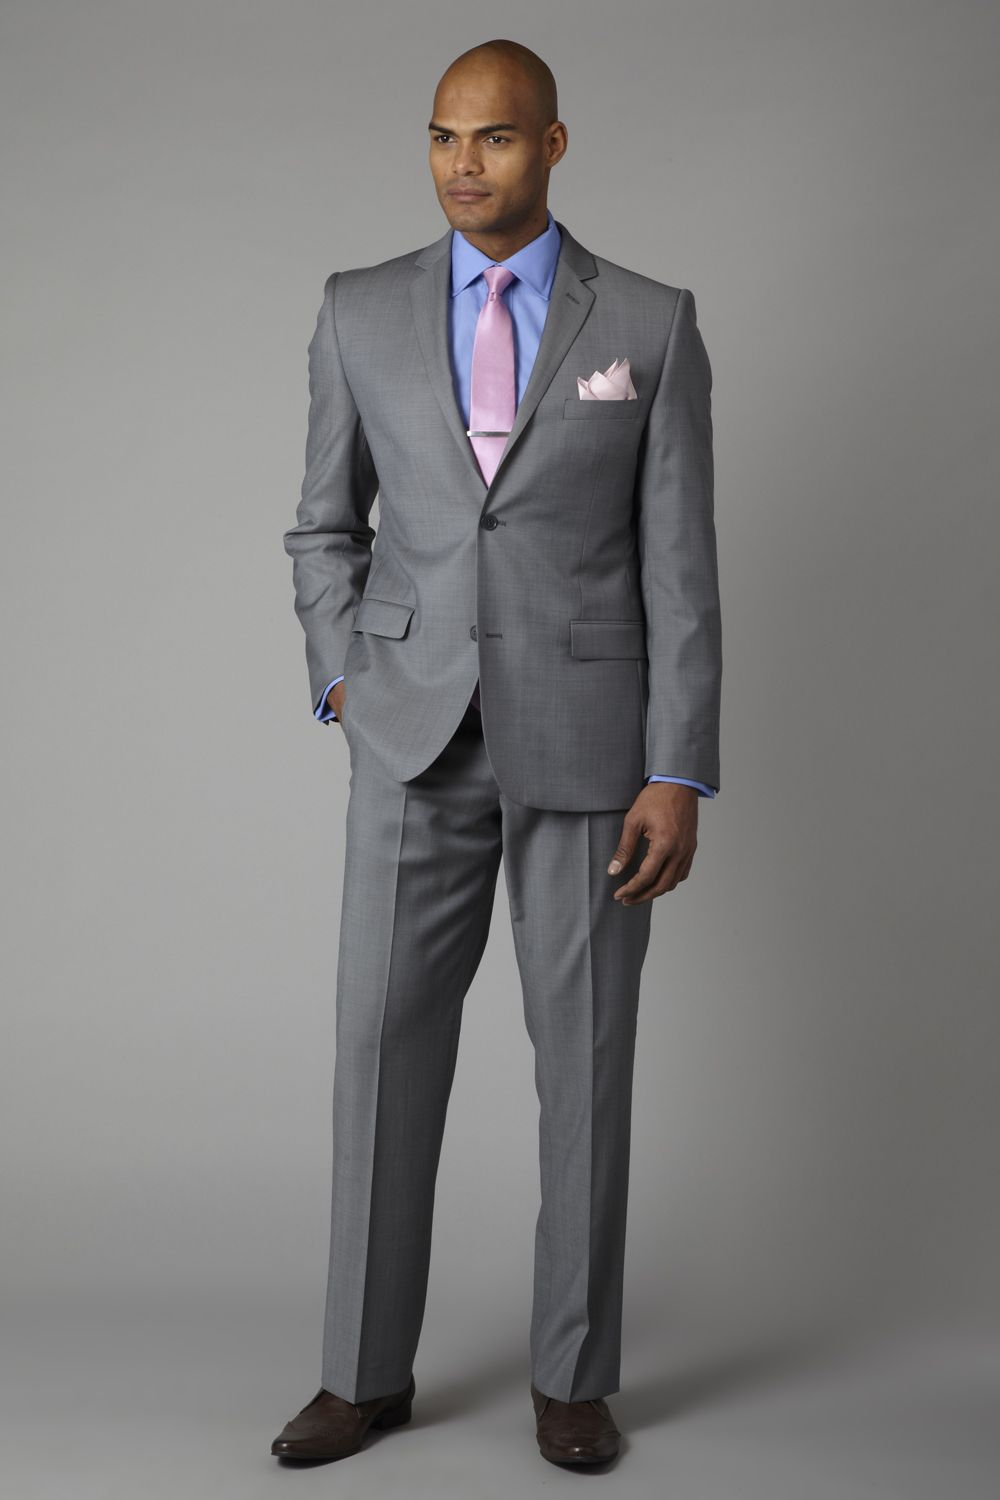 grey suits - Google Search | grey wedding suits | Pinterest ...